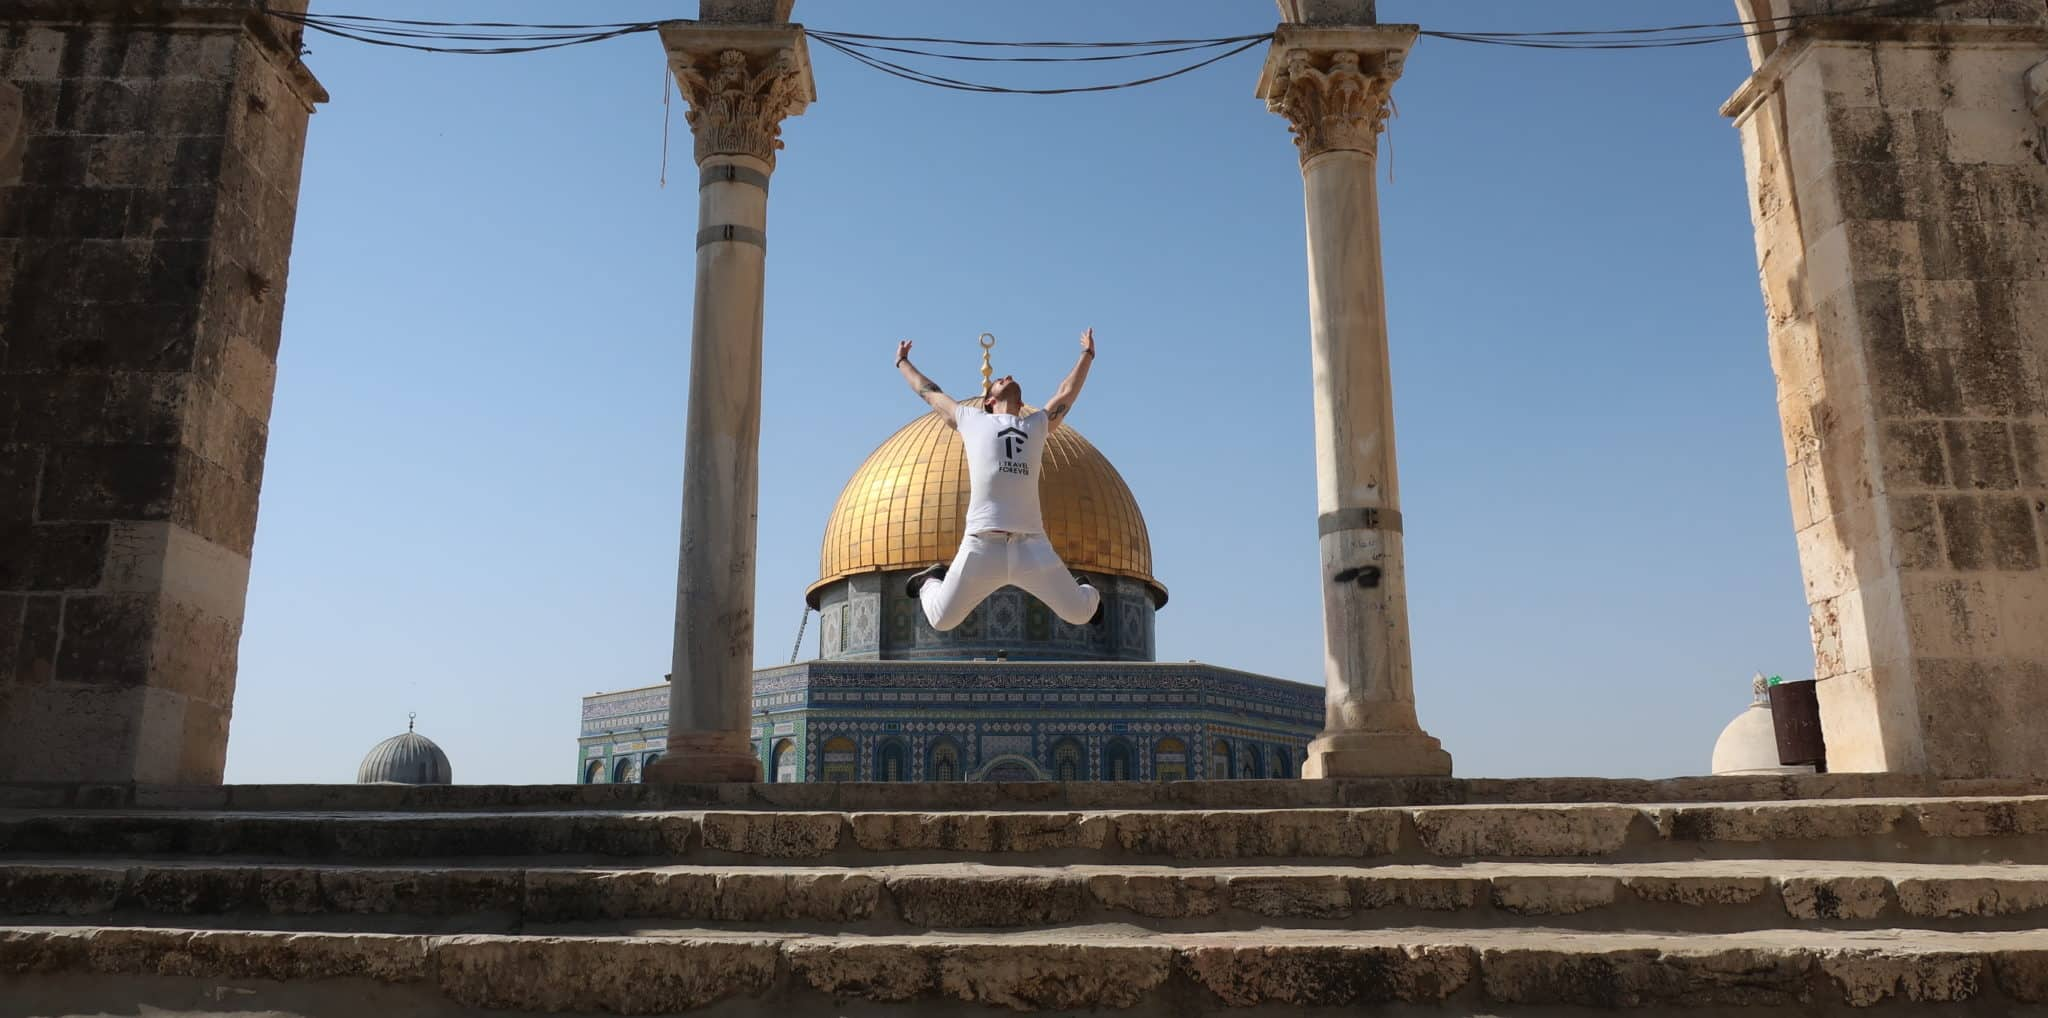 Jumping at Temple Mount in Jerusalem